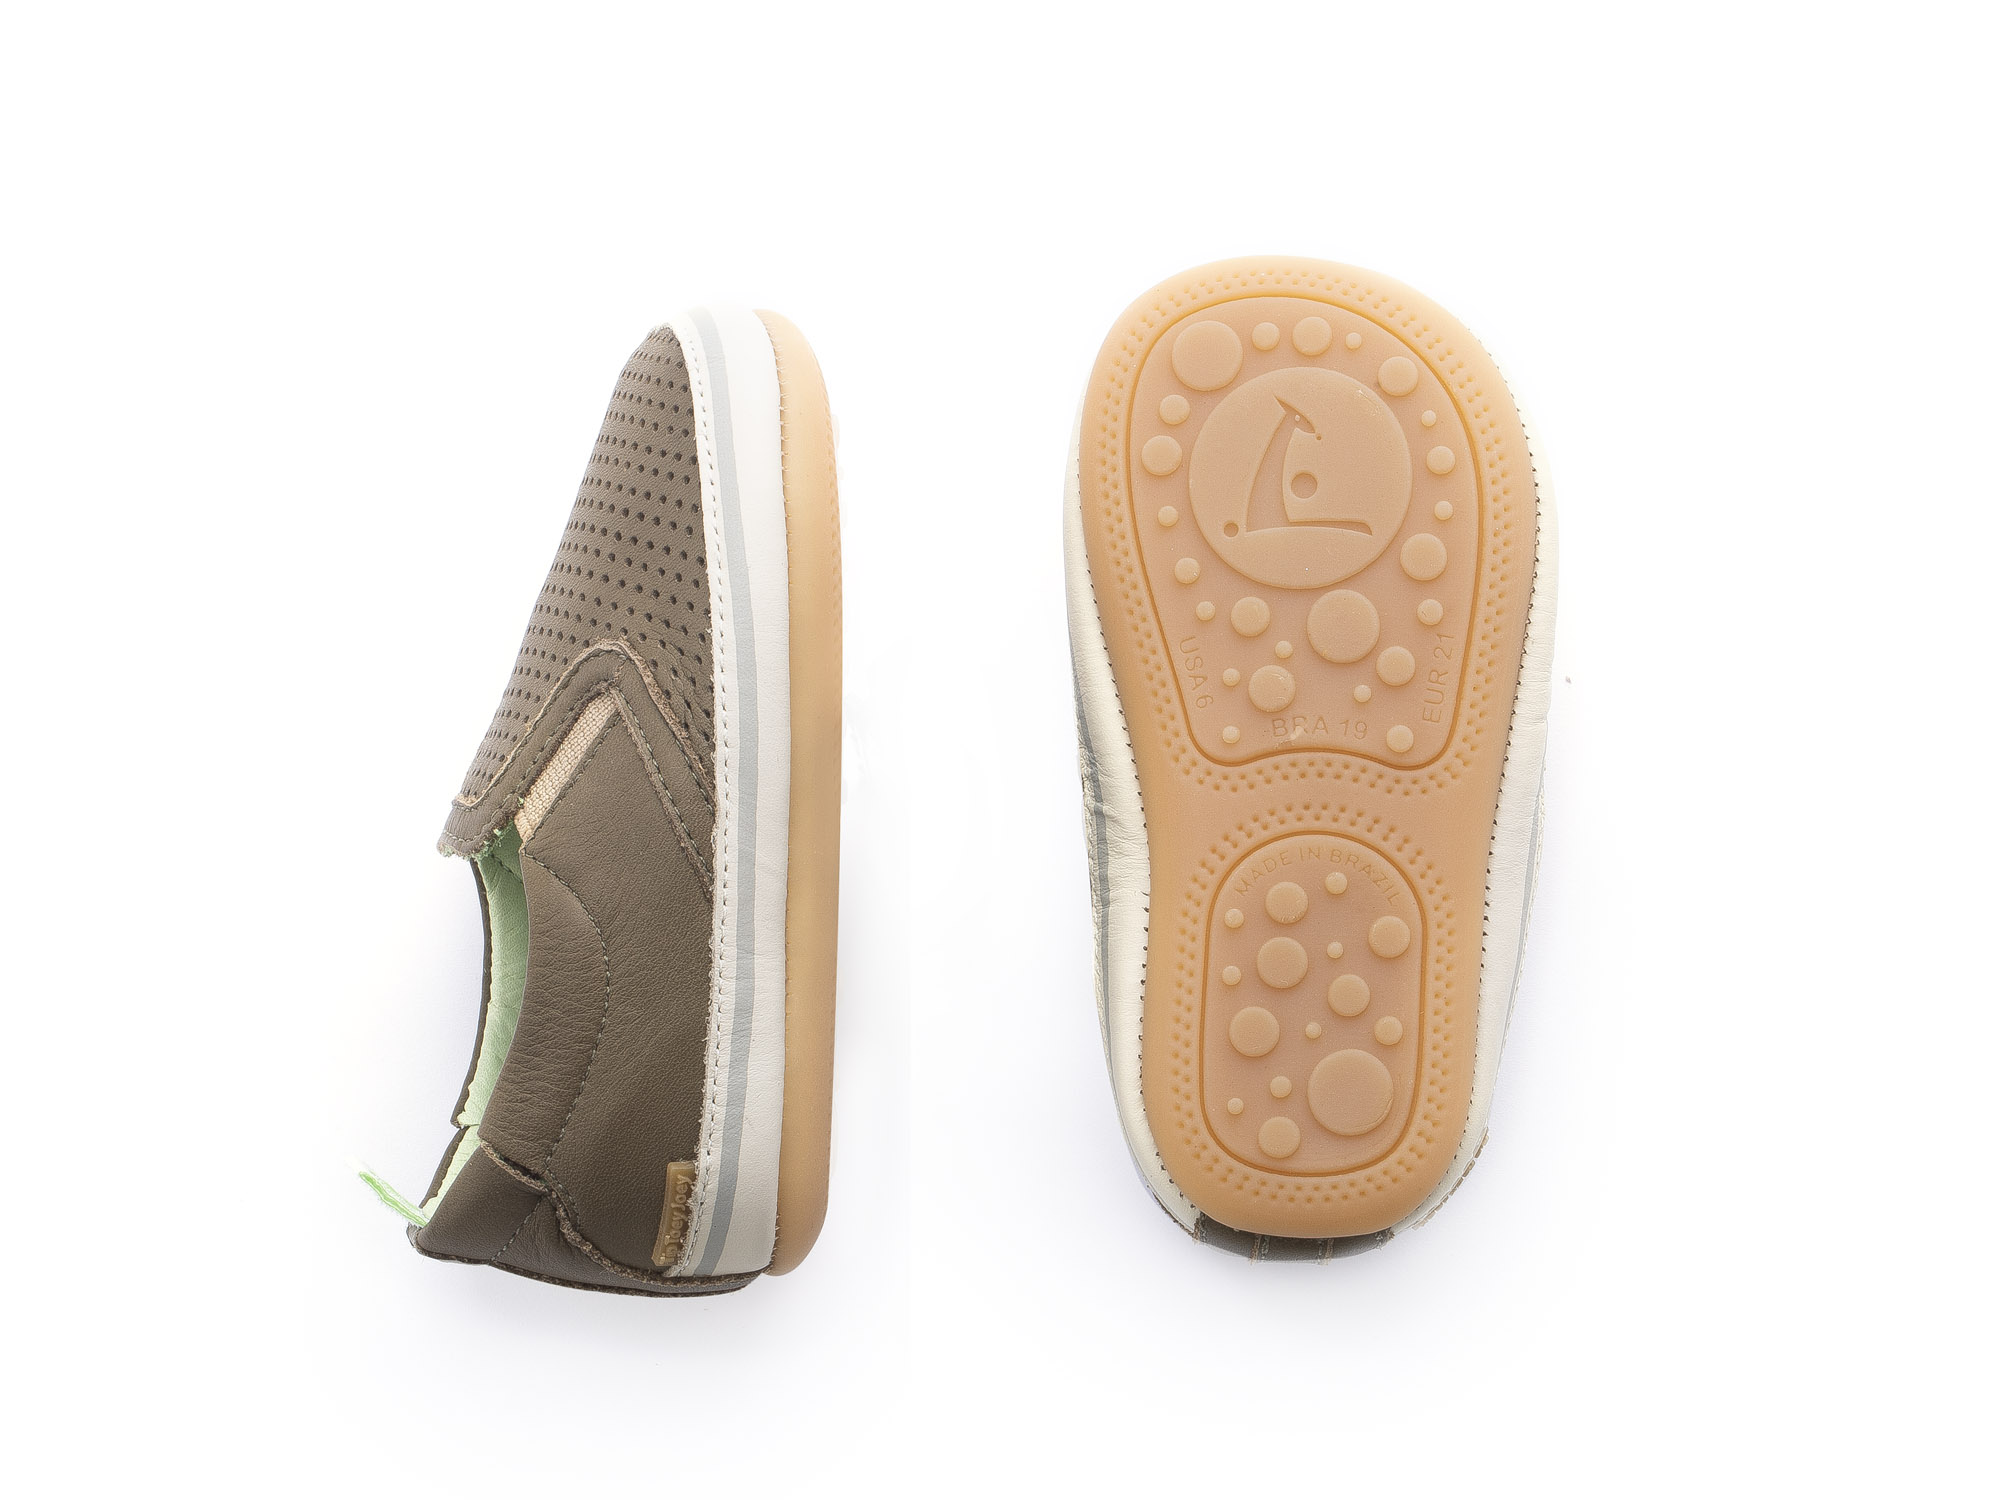 Sneaker Casual Woody Mineral Green Holes/ Mineral Green Baby 0 à 2 anos - 1